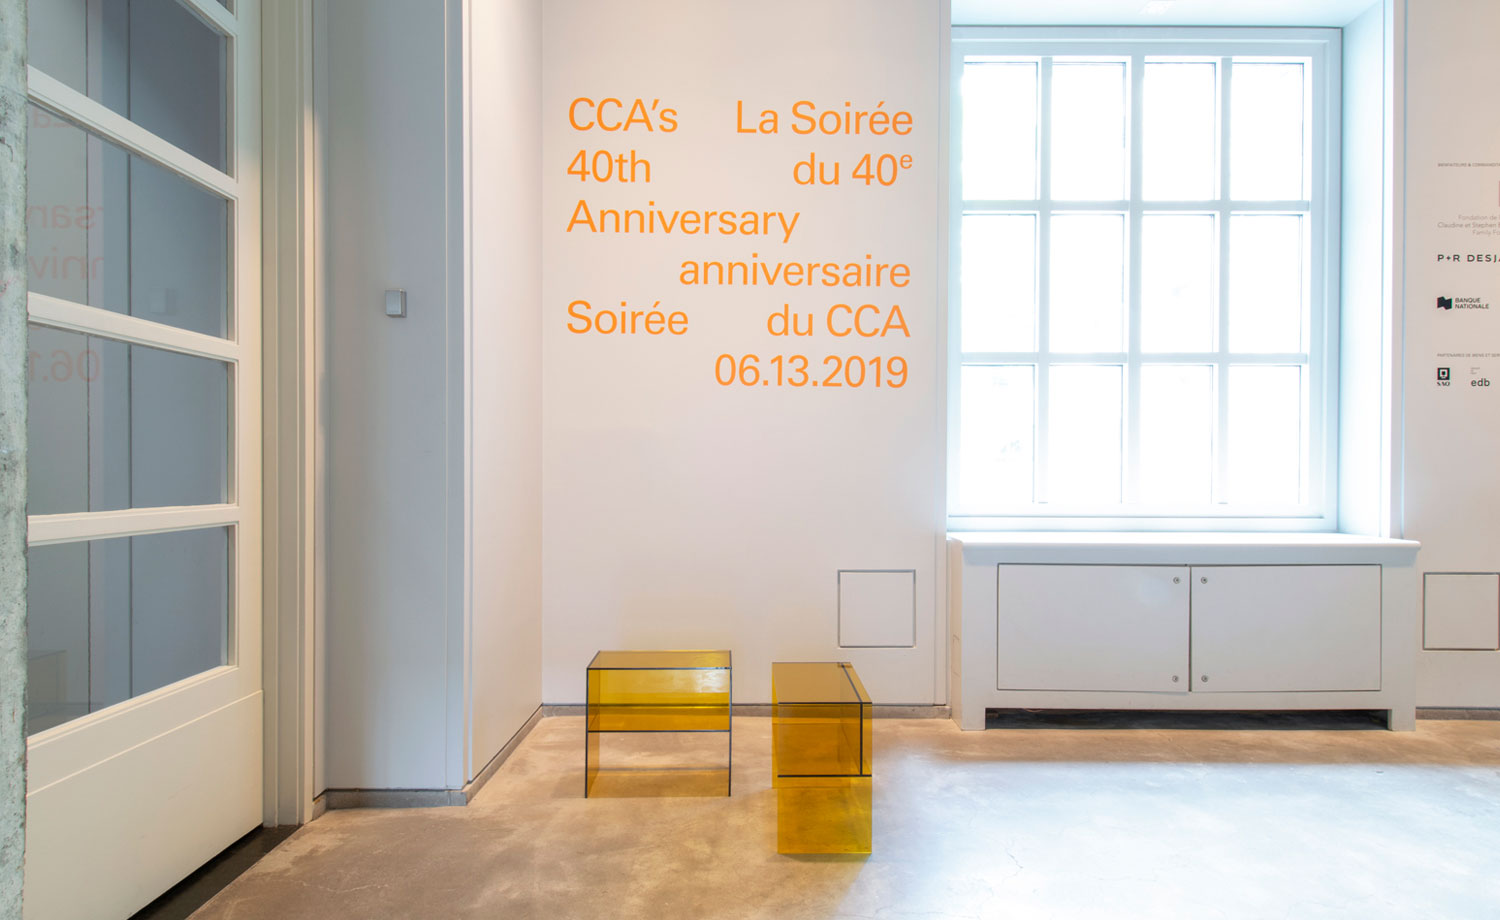 edb in spaces : CCA